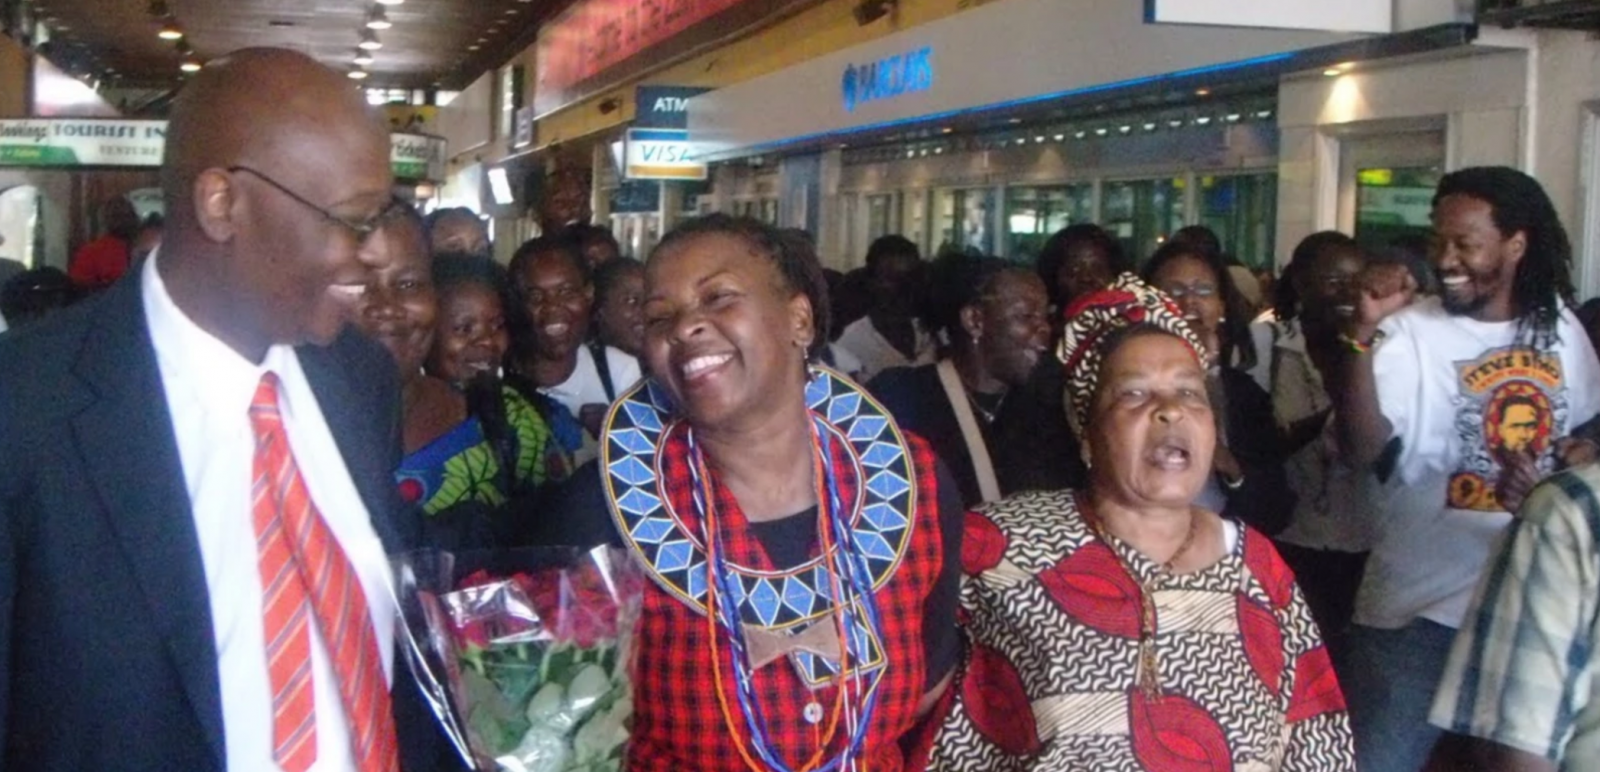 Njeri Kabeberi, Jomo Kenyatta International Airport, Kenya, human rights